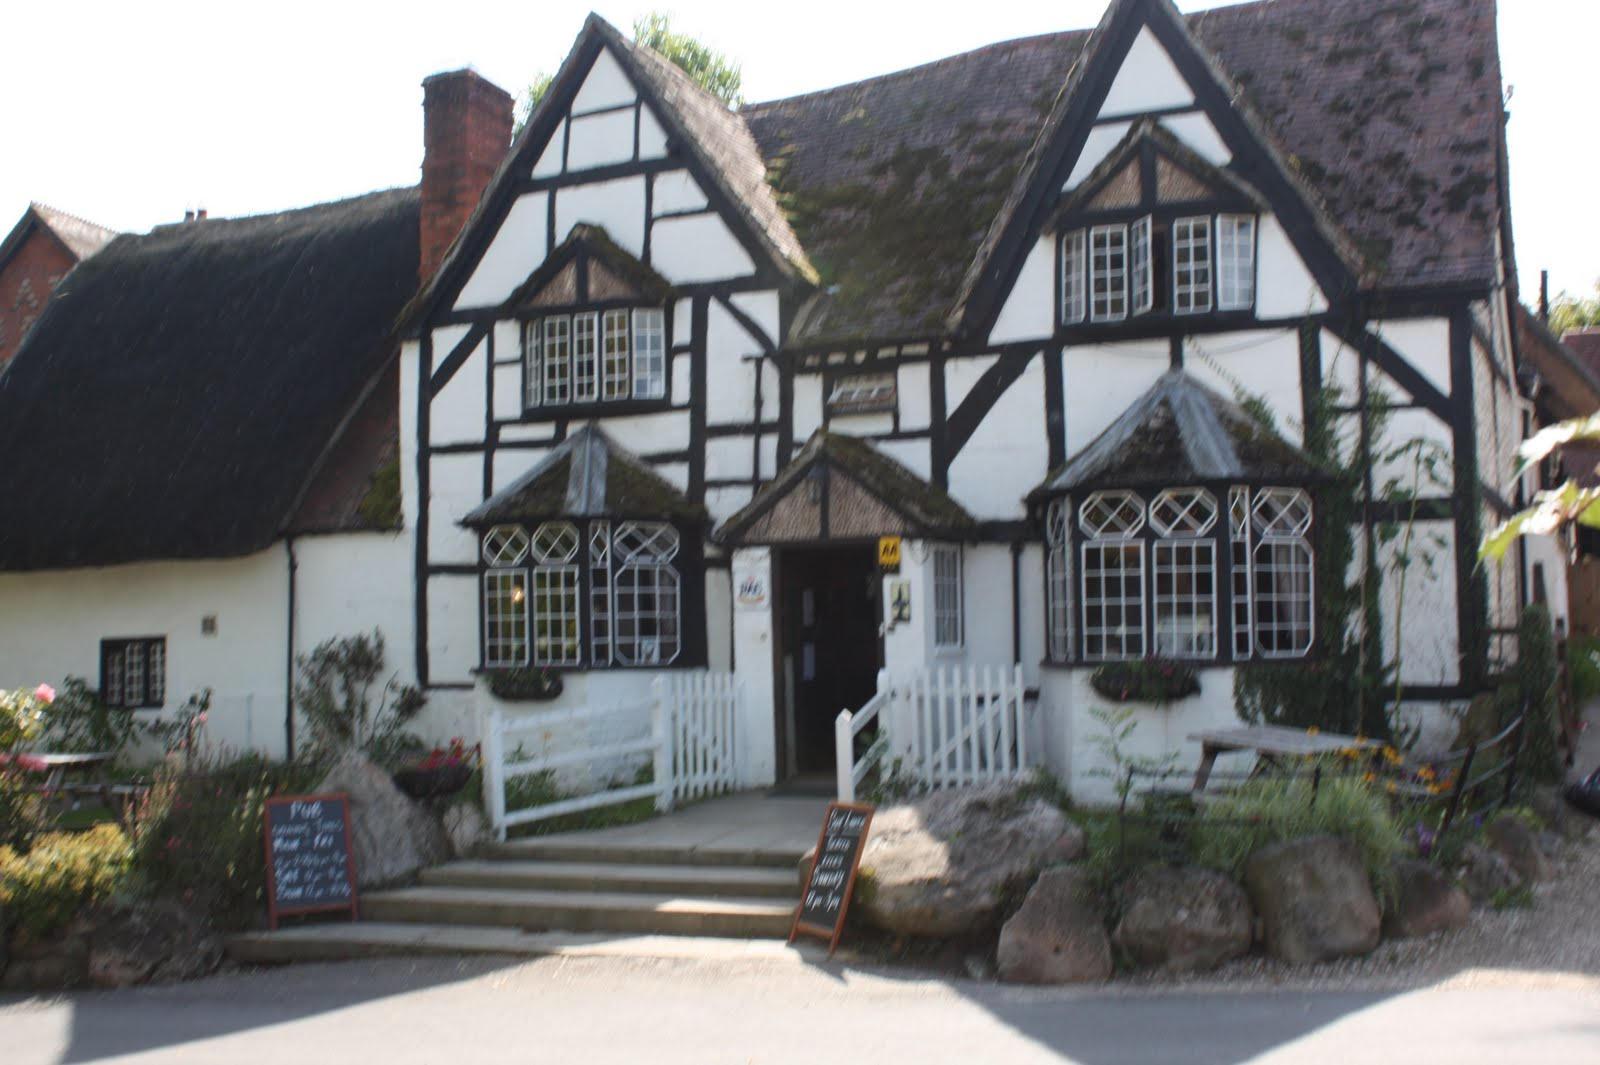 White Horse Inn, Woolstone